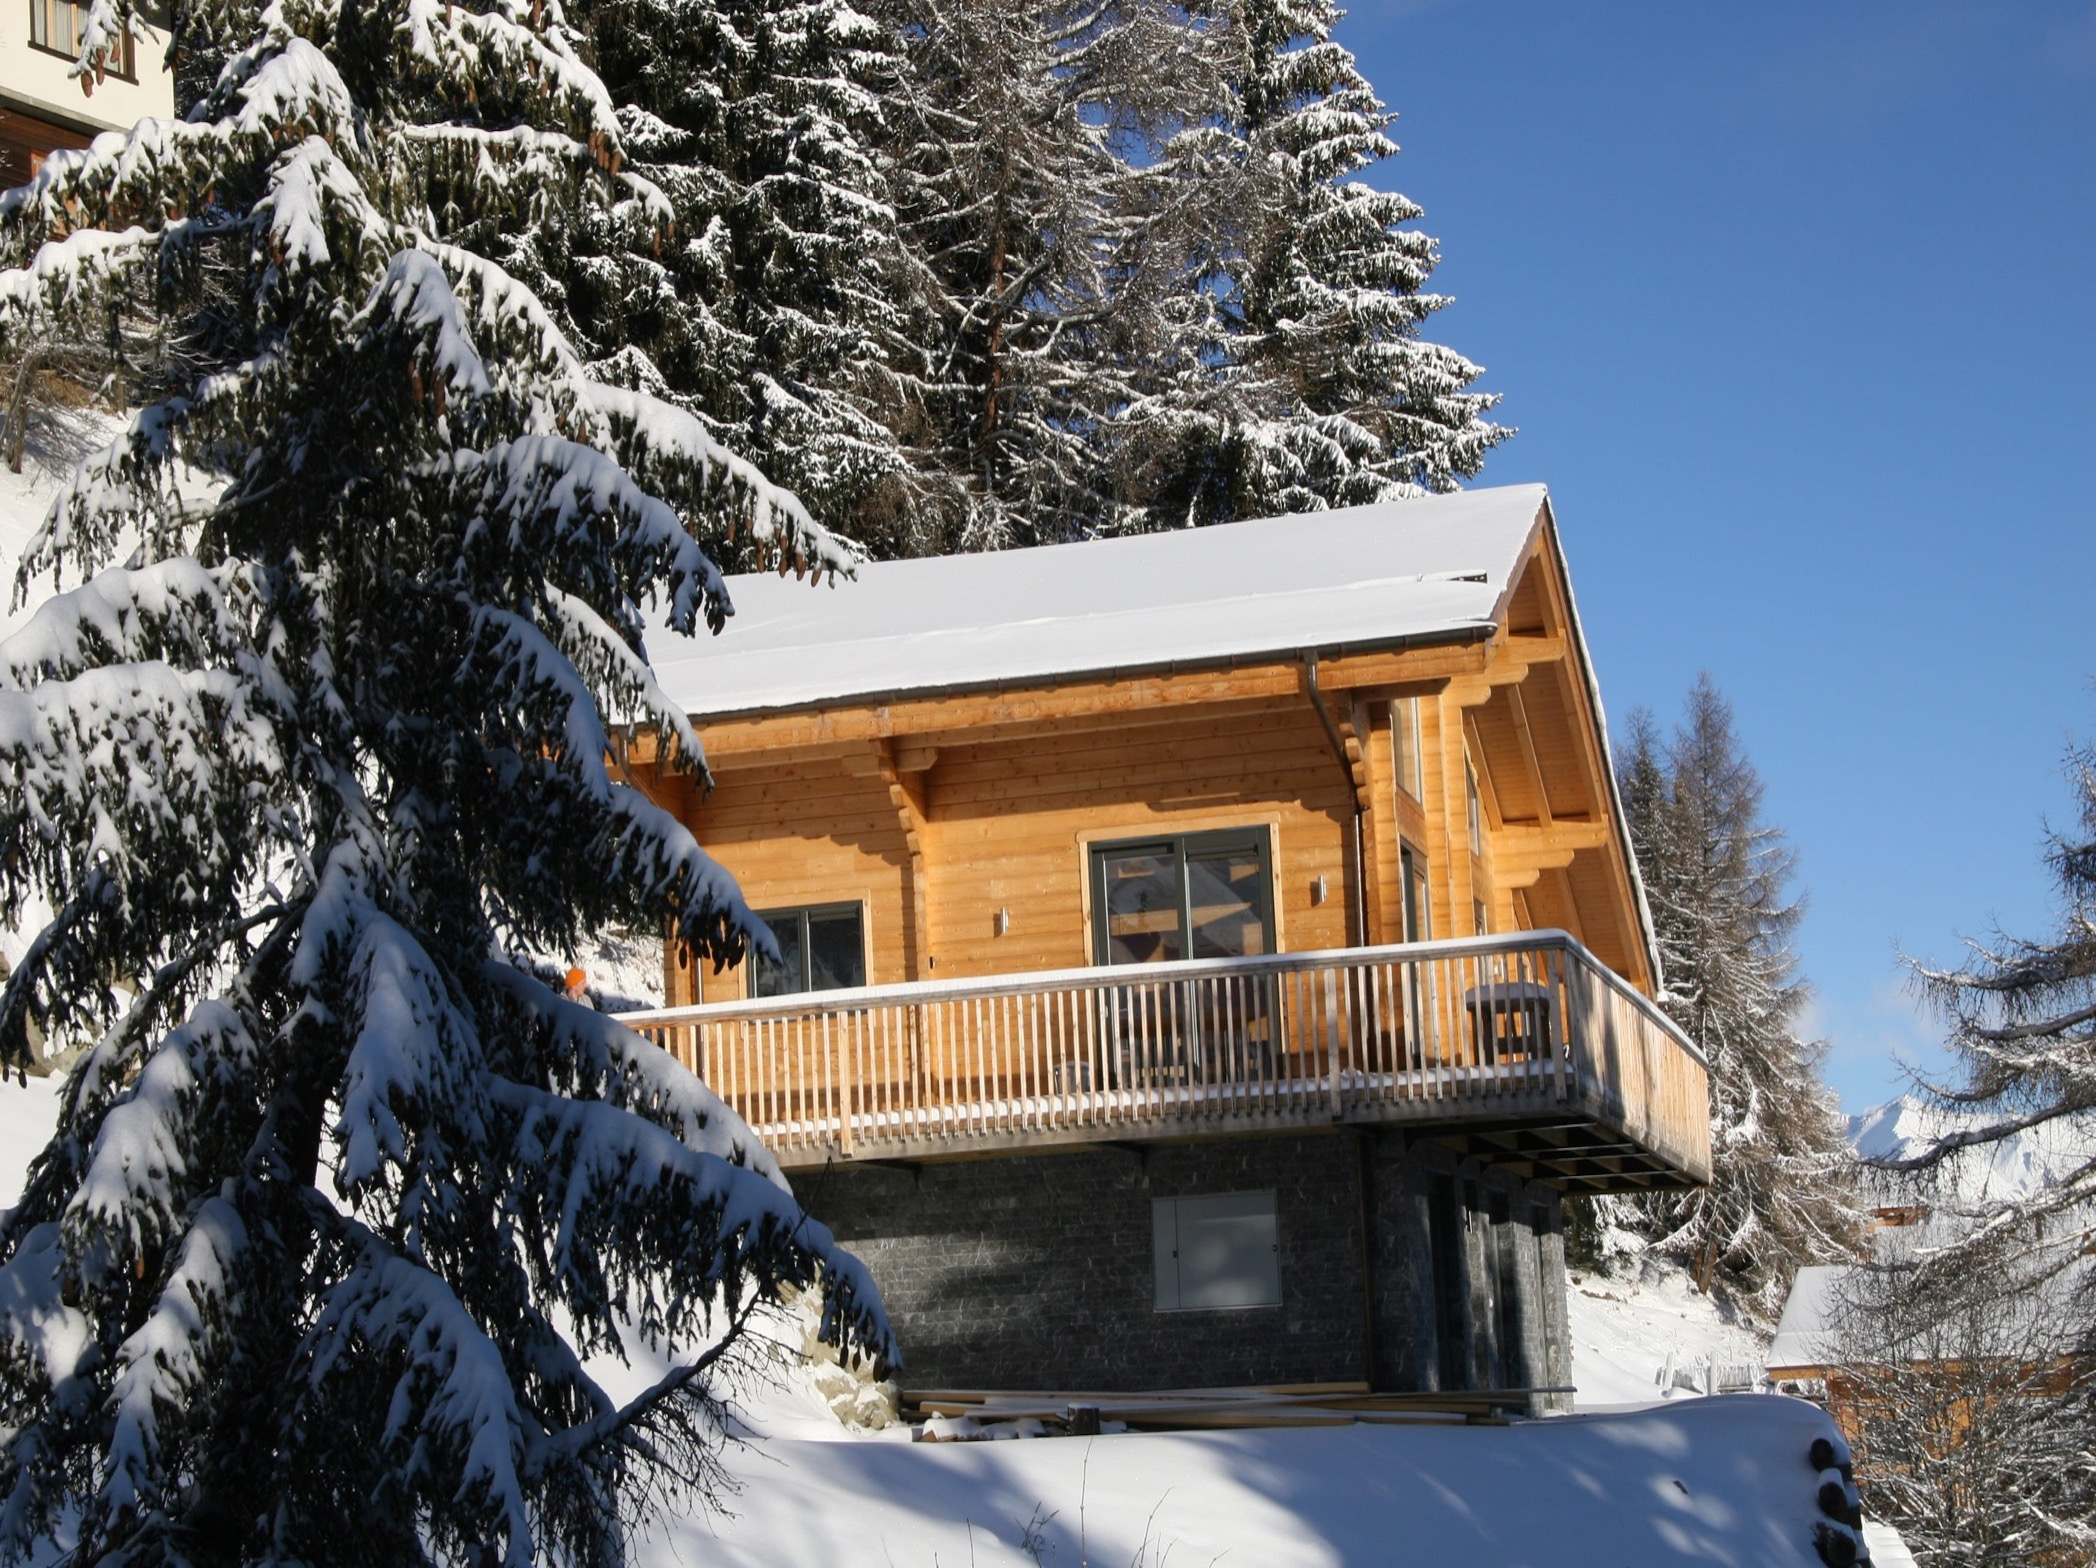 4 season holiday rental in the Valais